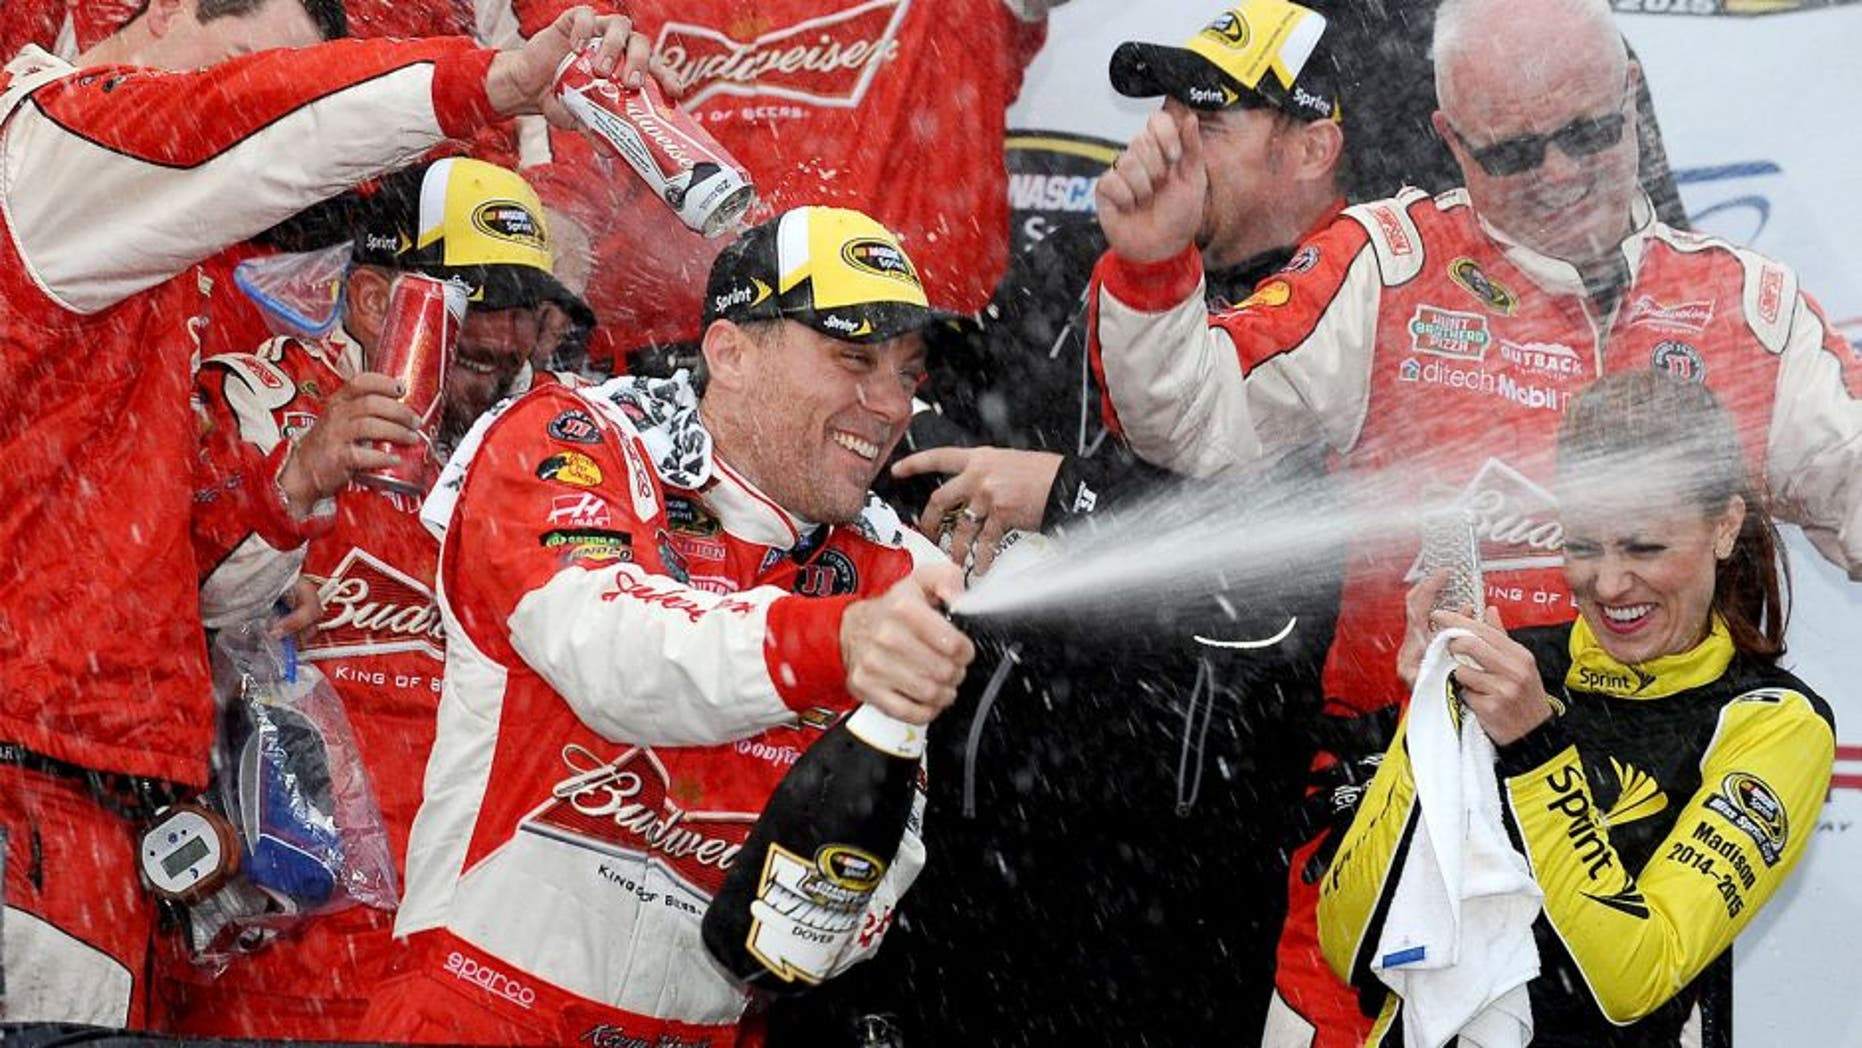 DOVER, DE - OCTOBER 04: Kevin Harvick, driver of the #4 Budweiser/Jimmy John's Chevrolet, celebrates in victory lane after winning the NASCAR Sprint Cup Series AAA 400 at Dover International Speedway on October 4, 2015 in Dover, Delaware. (Photo by Rainier Ehrhardt/NASCAR via Getty Images)